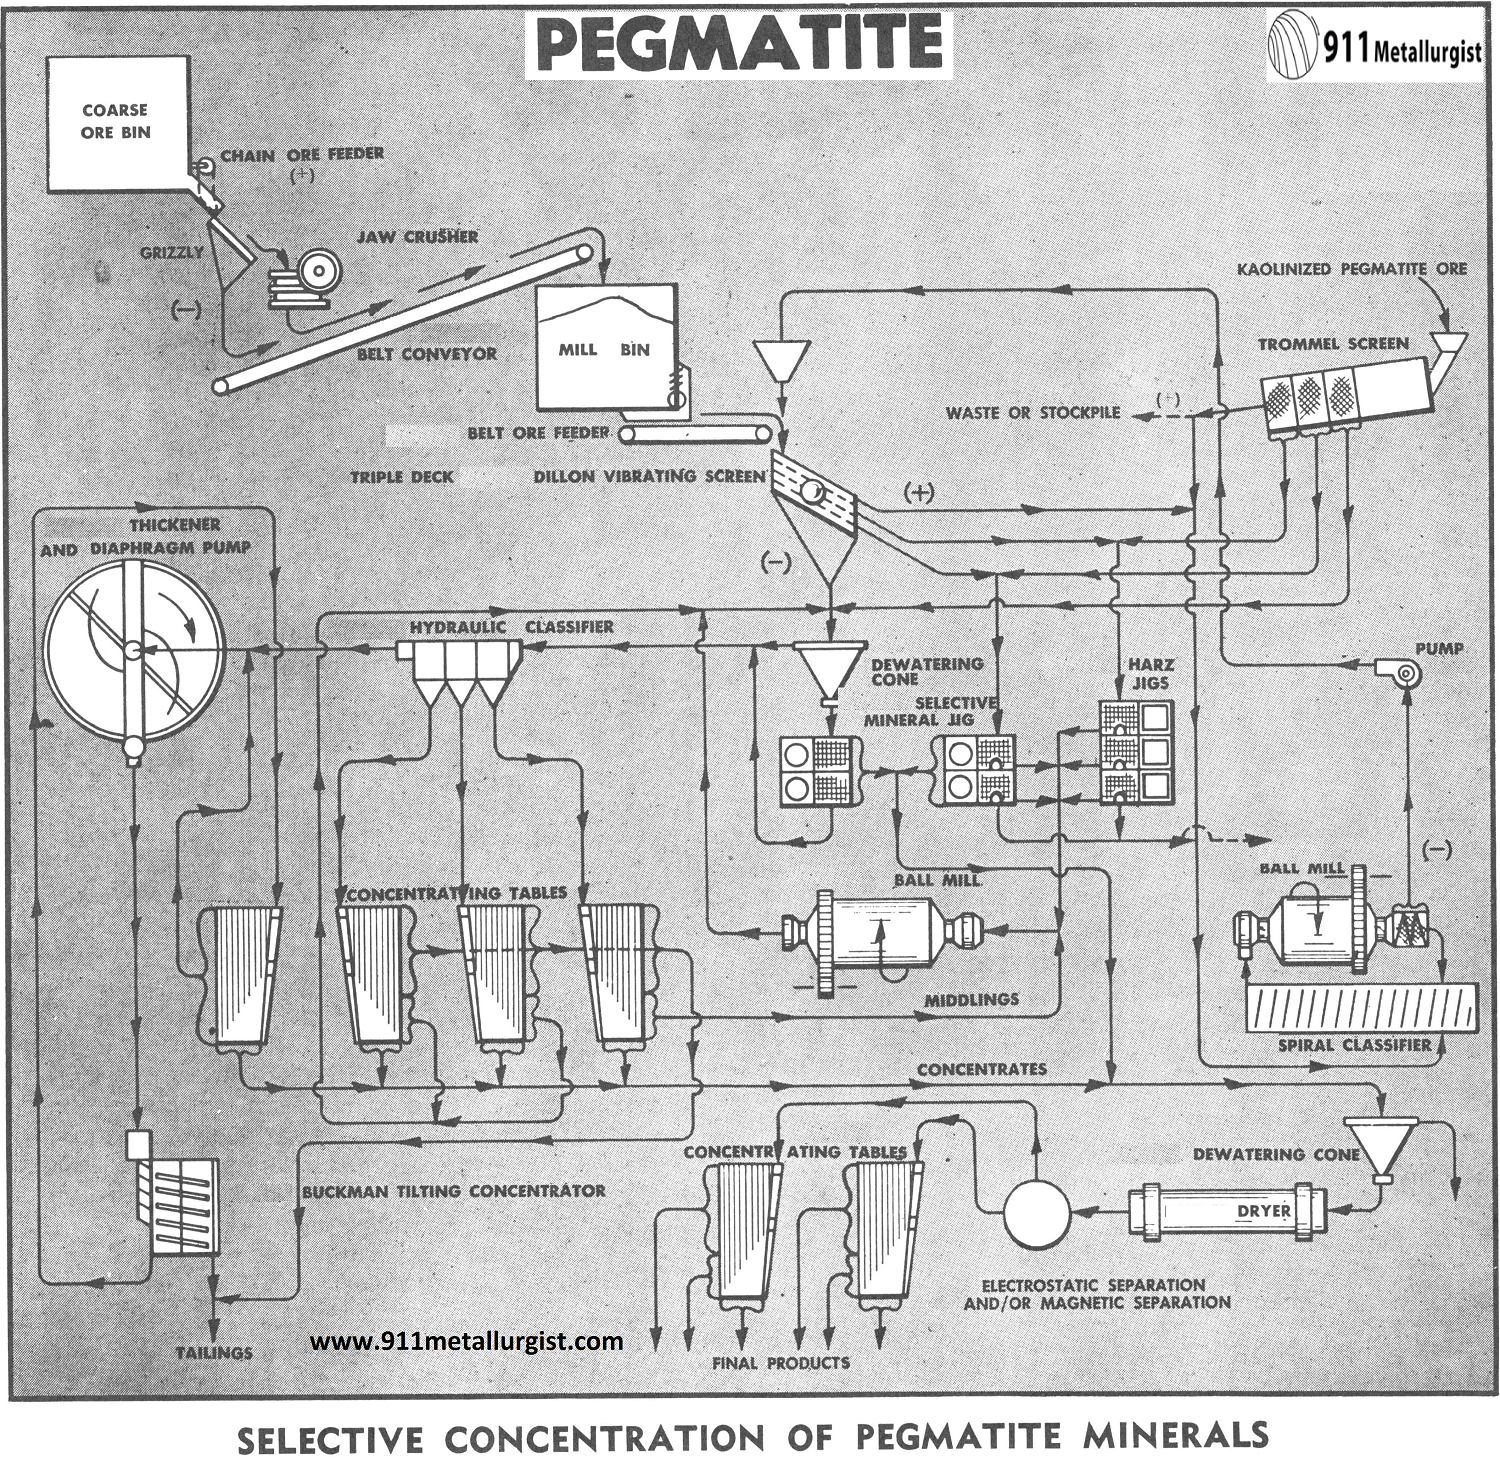 Selective Concentration of Pegmatite Minerals